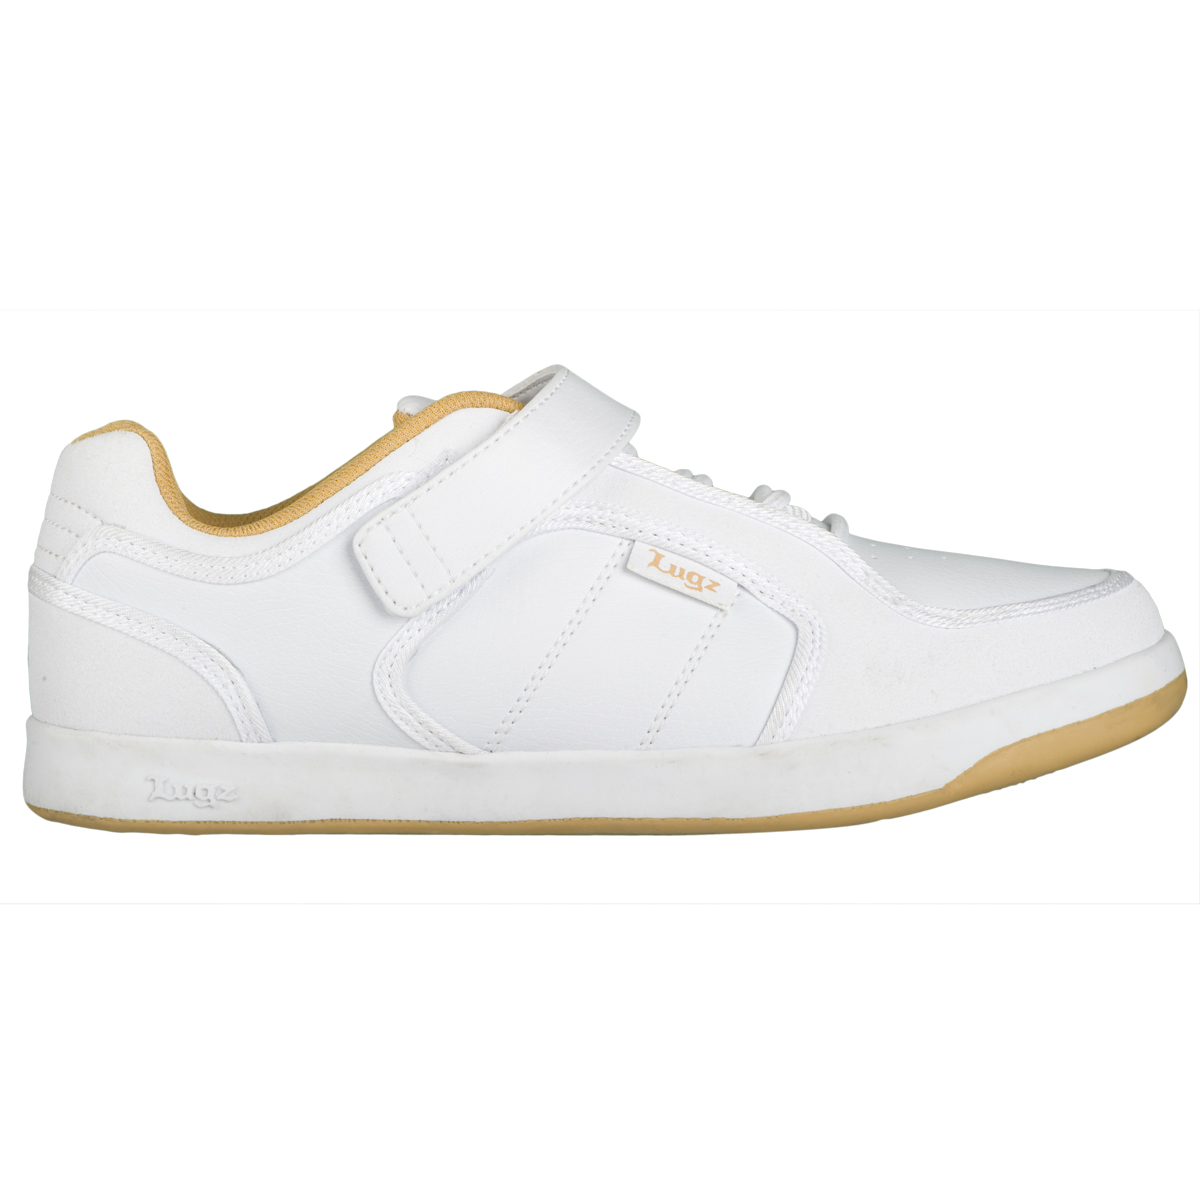 Lugz Slice Mens Sneaker White/Wheat